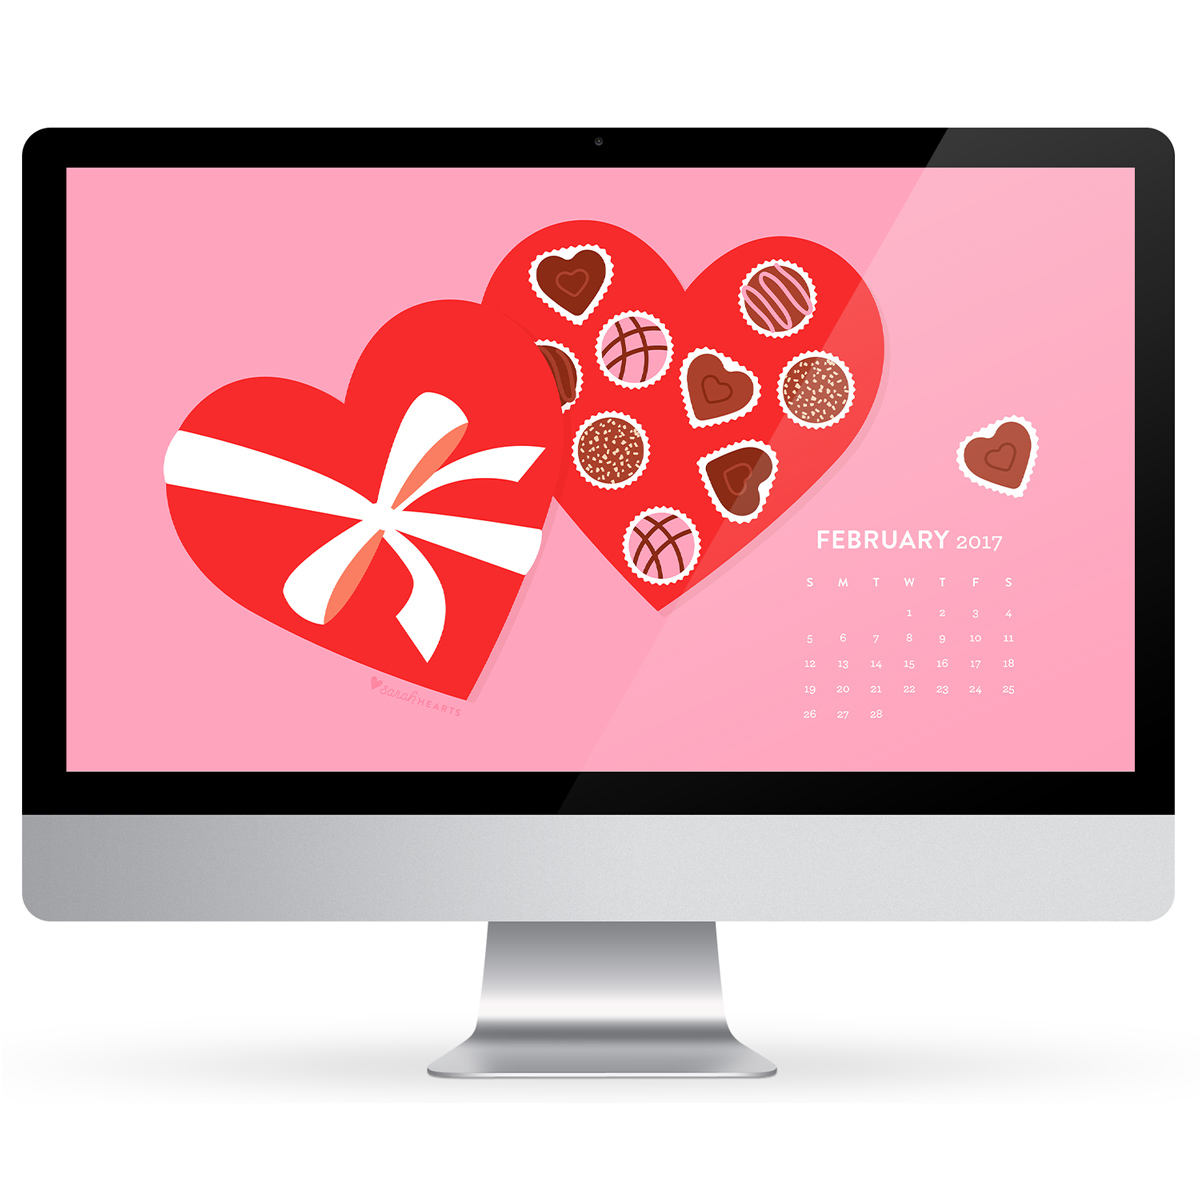 Show your computer, phone and tablet some love this season with this free February 2017 heart chocolate box wallpaper!